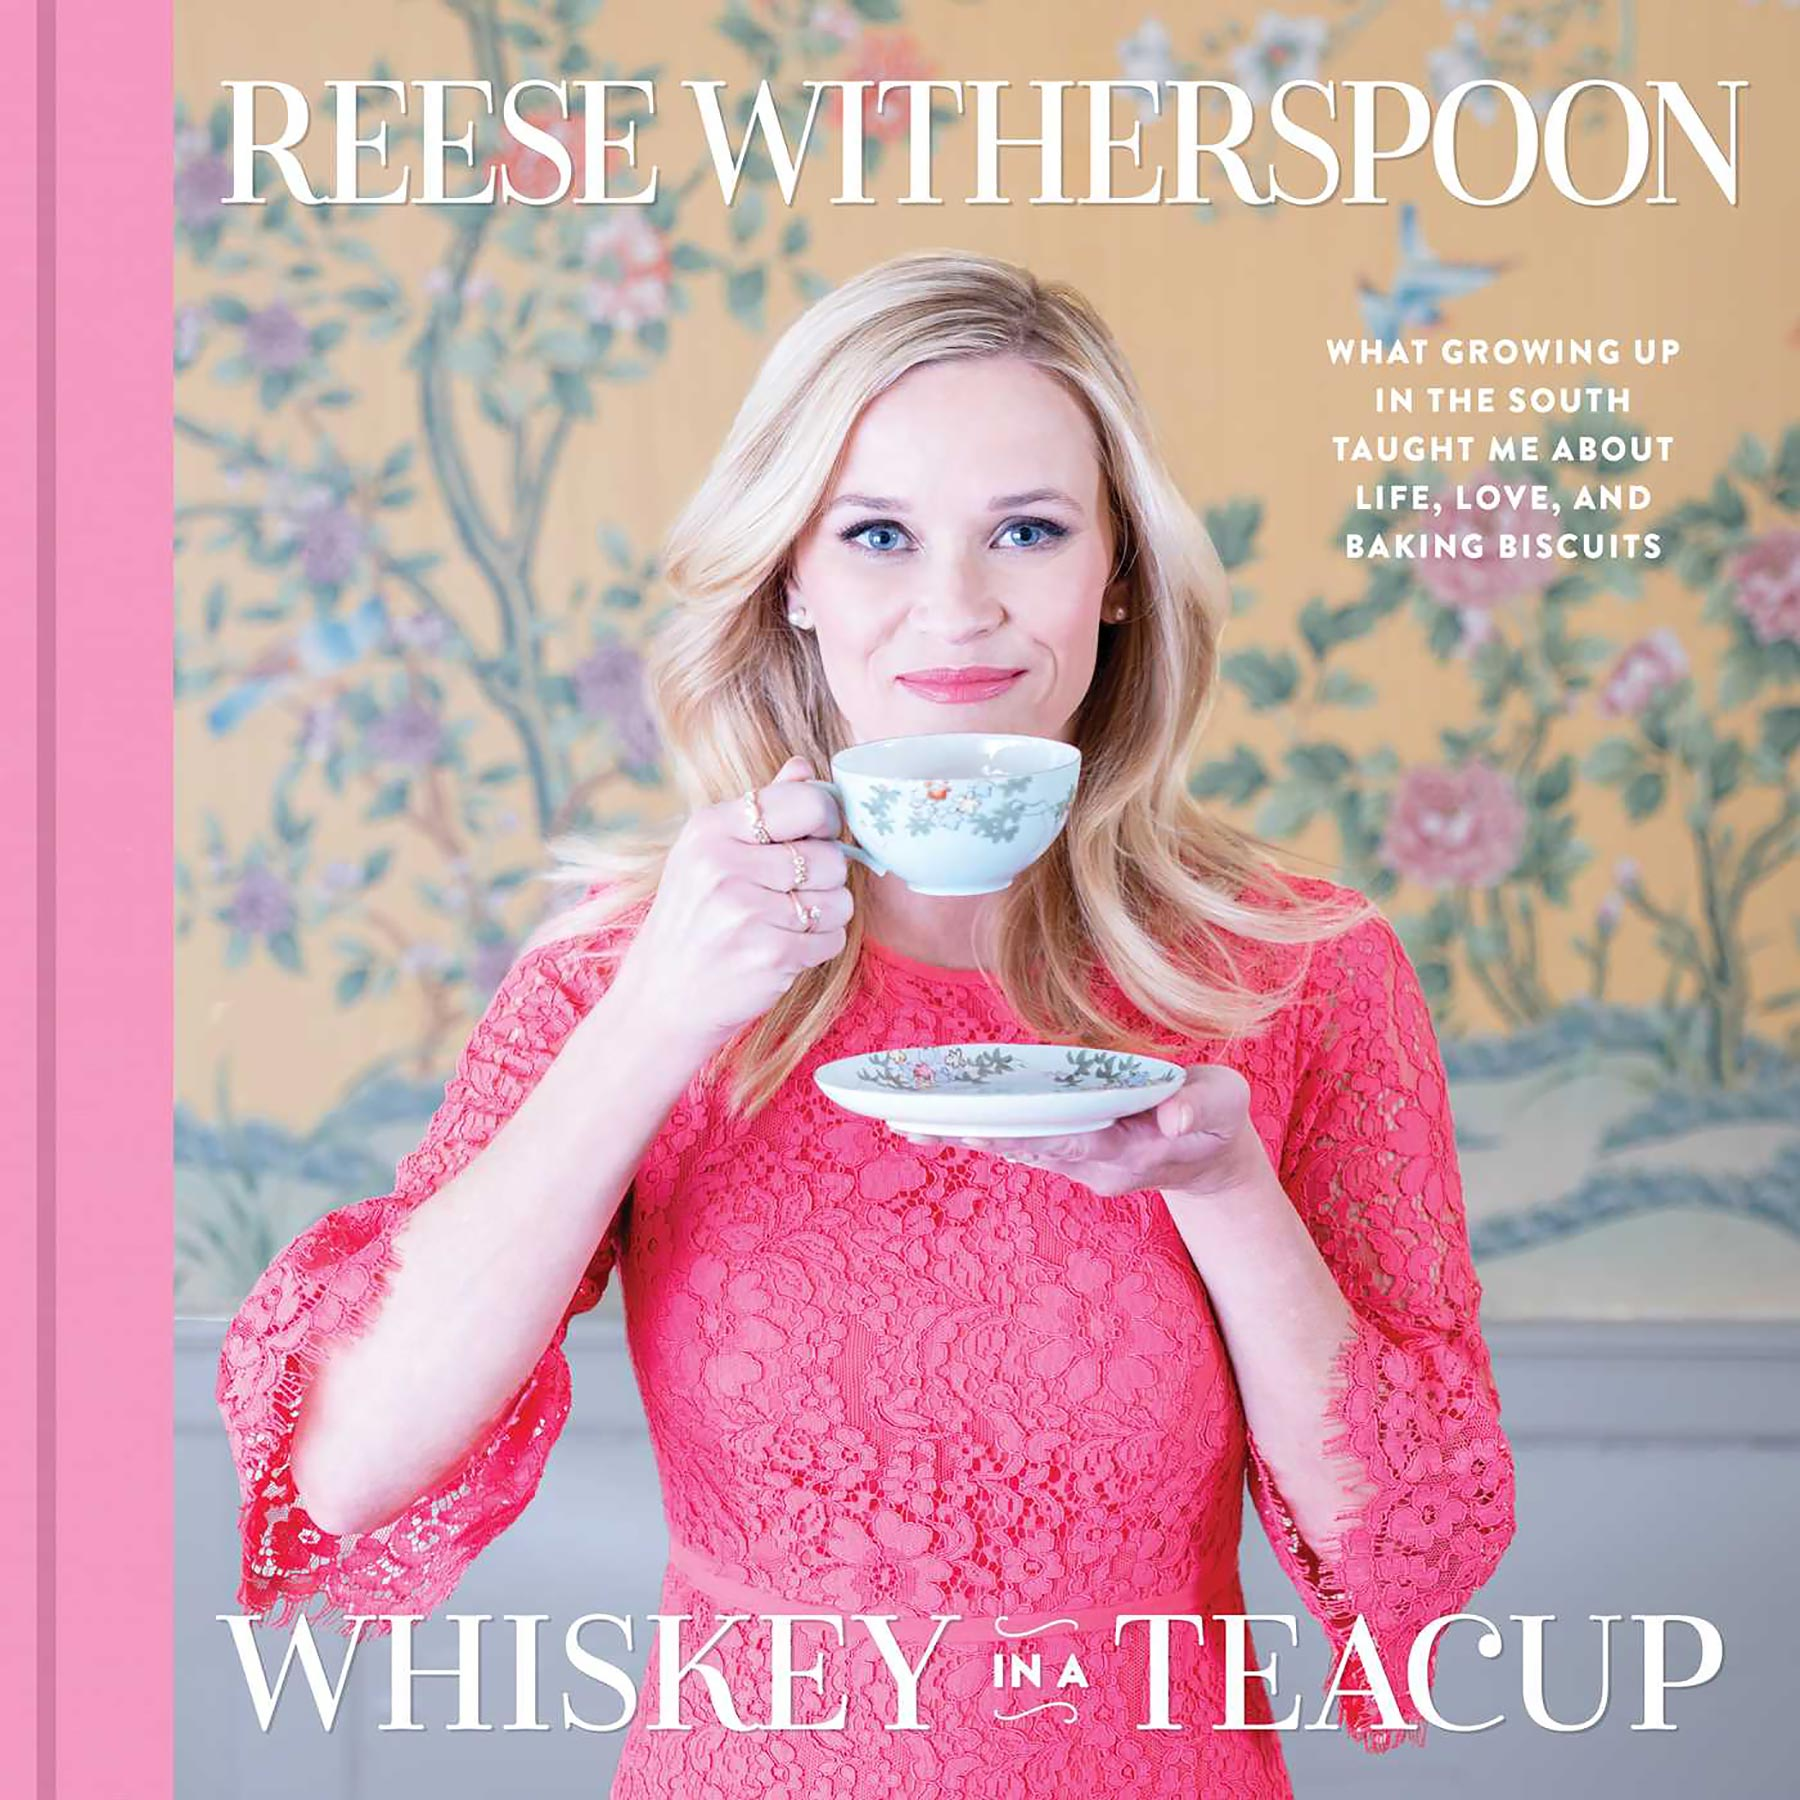 whiskey-in-a-teacup-9781471166228_hr